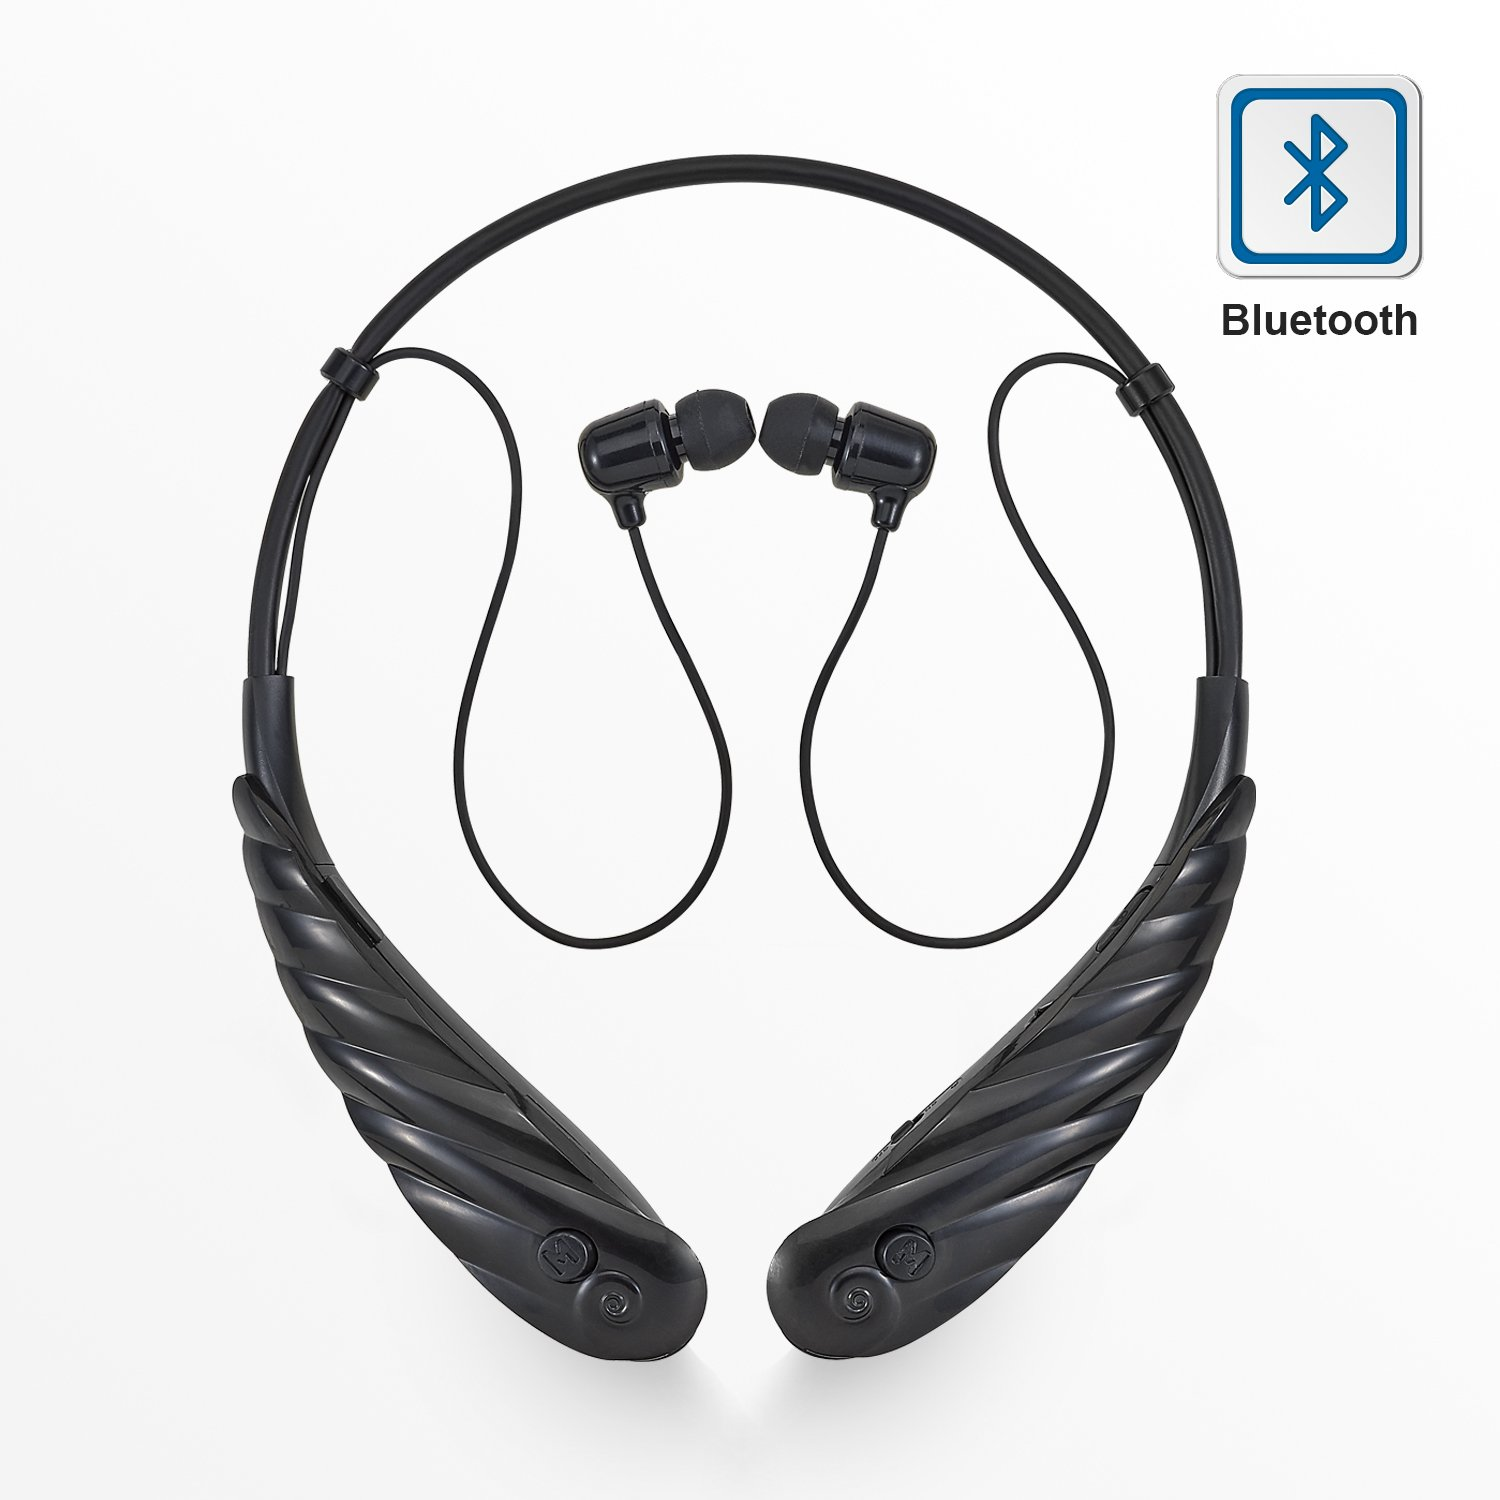 Mimitakara Active Black Fda Registered Rechargeable Living Aids Hearing Amplifiers Accessories Amplifier With Bluetooth Earphone Technology Health Personal Care